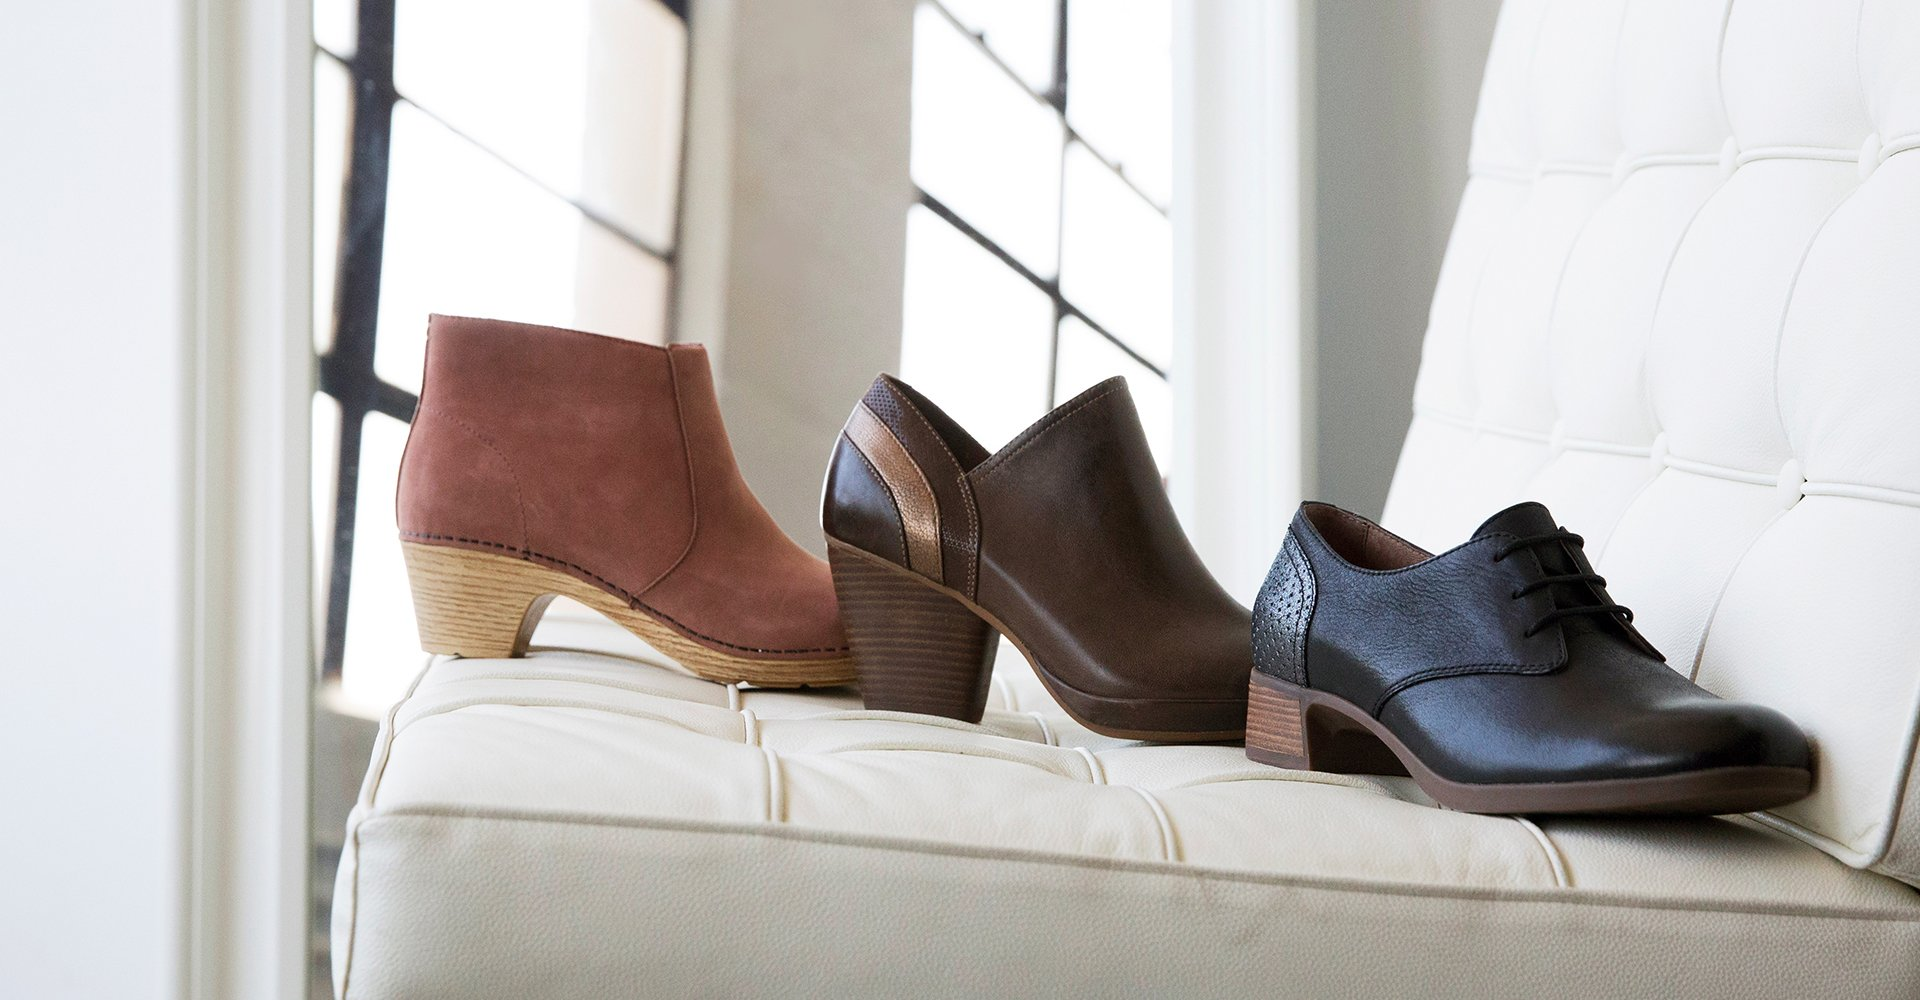 Image of three Dansko shoes. A bootie, an oxford and and ankle boot.